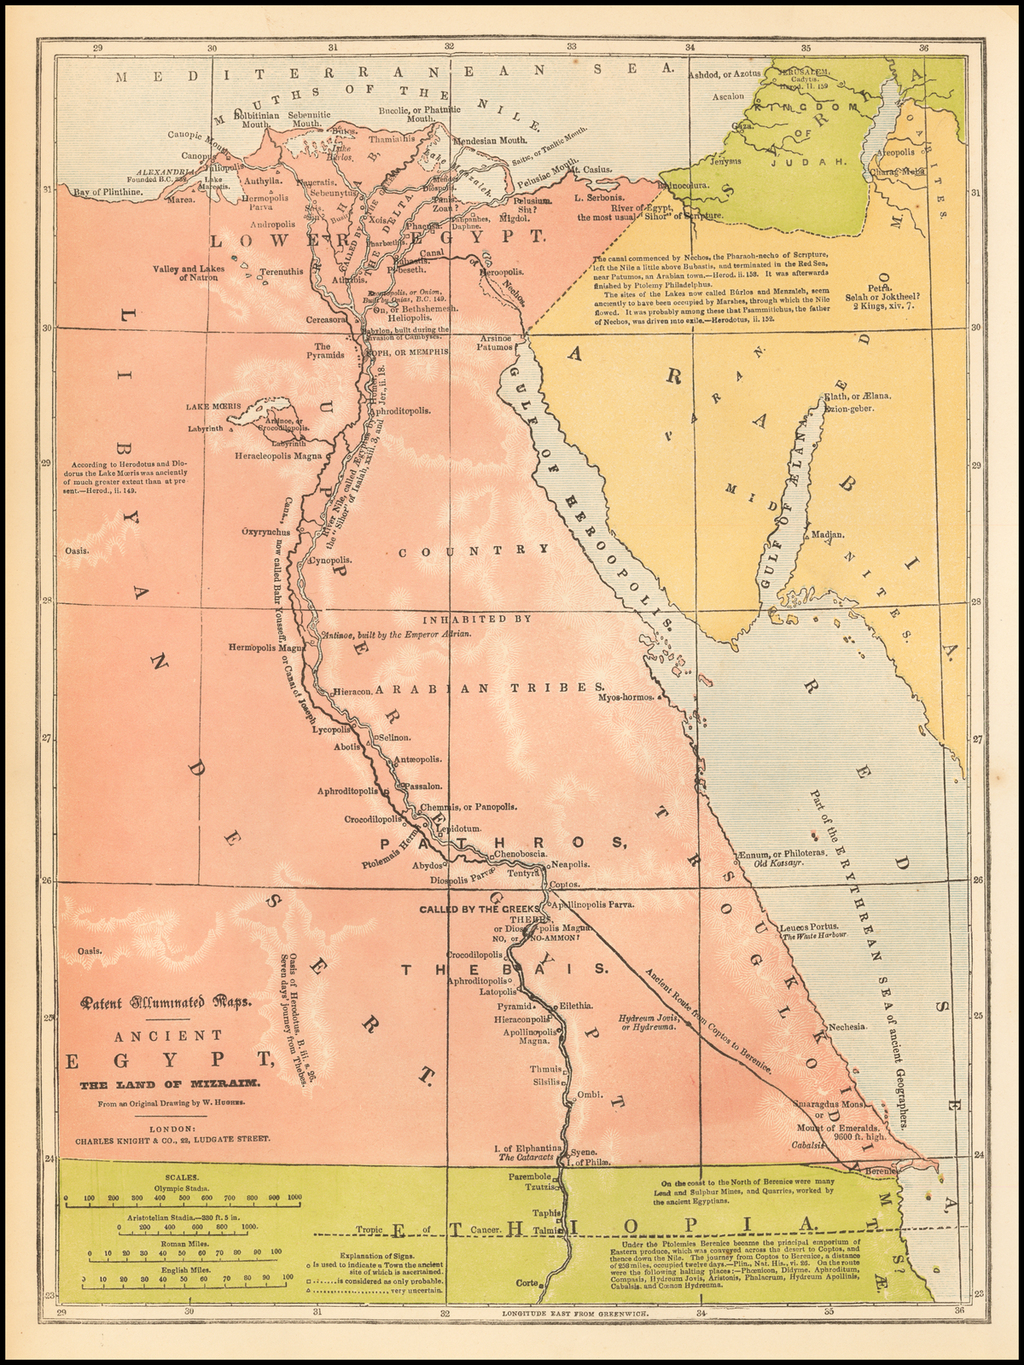 Patent Illuminated Maps -- Ancient Egypt, The Land of Mizraim, From an Original Drawing by W. Hughes By Charles Knight & Co.